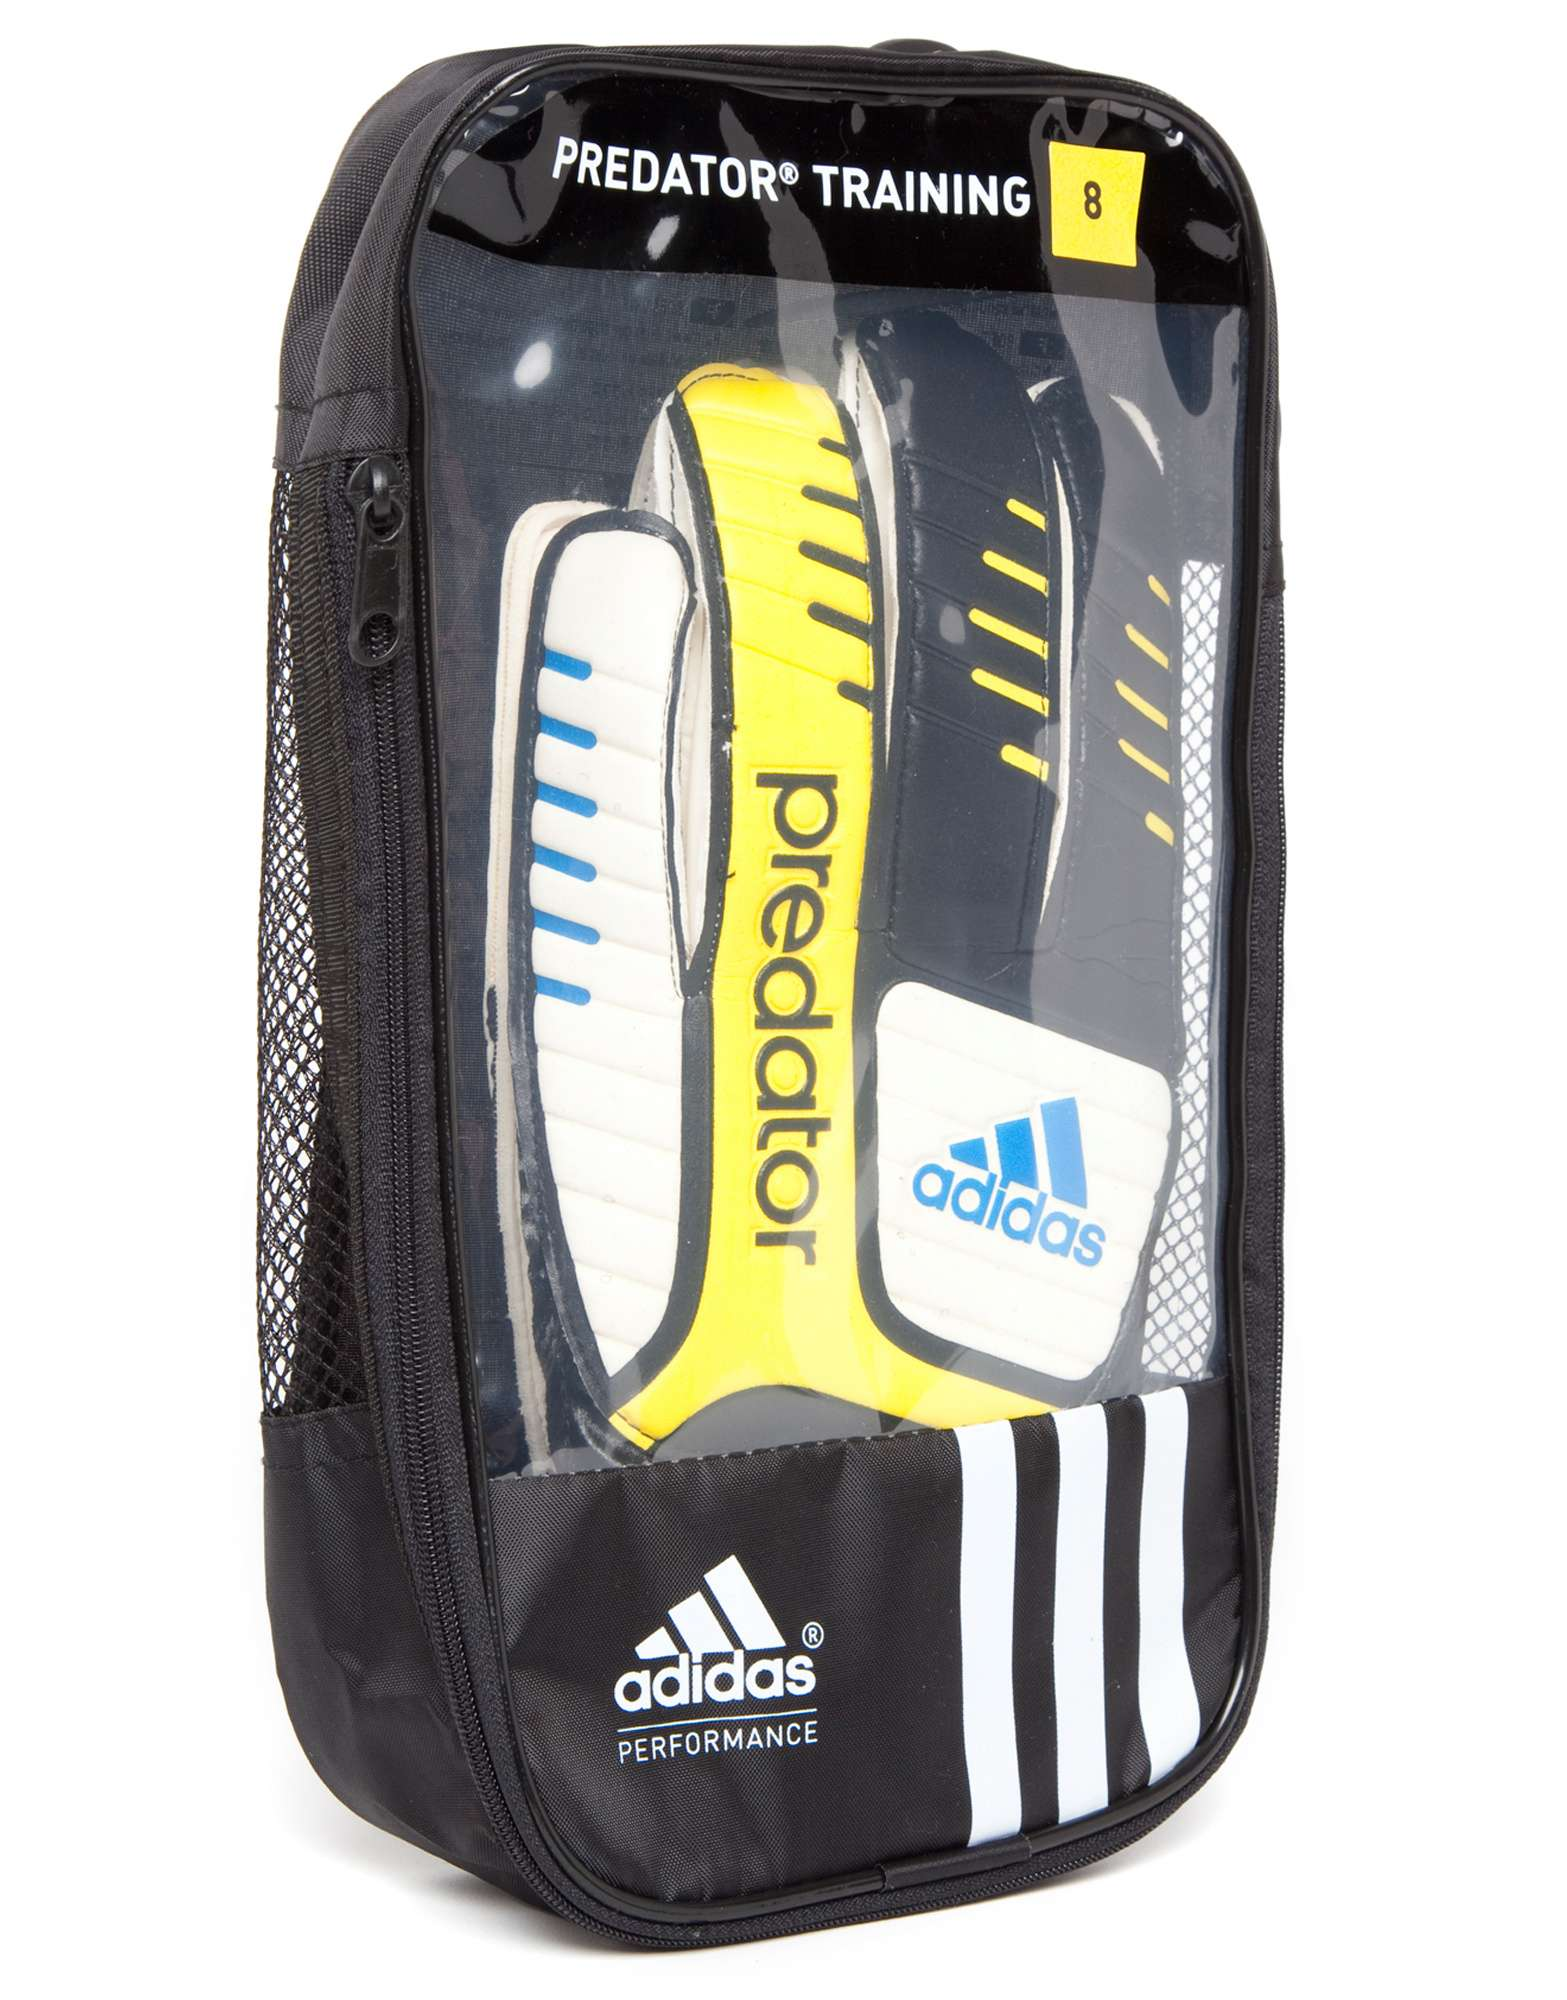 adidas Predator Training Goal Keeper Gloves